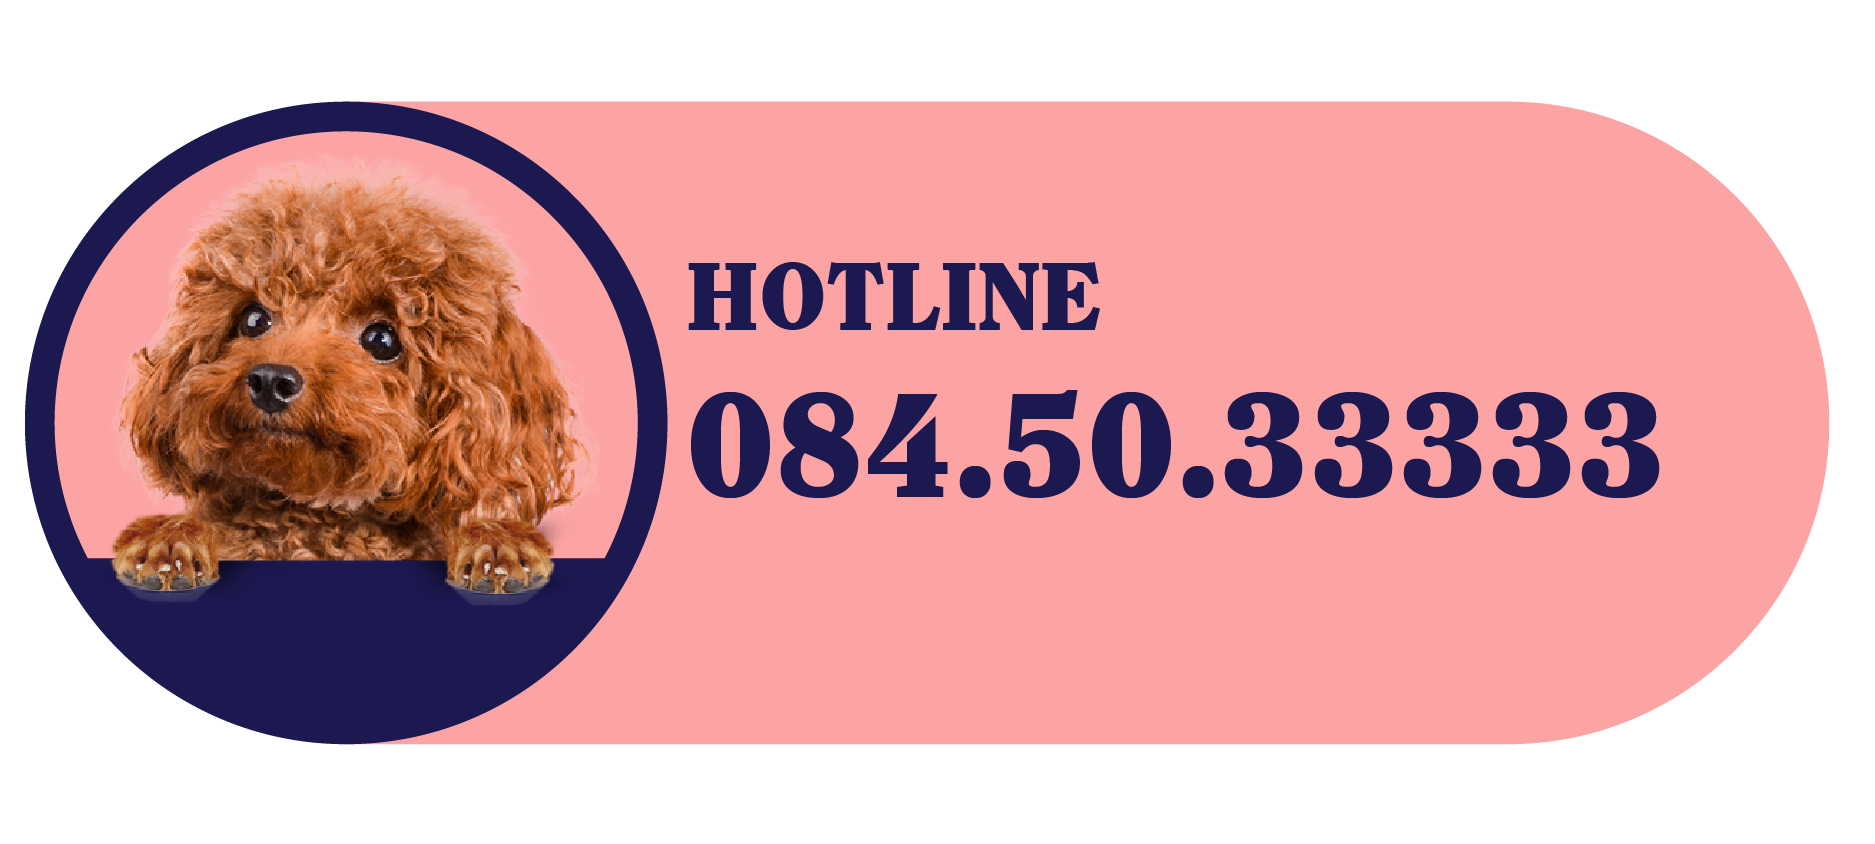 button số hotline